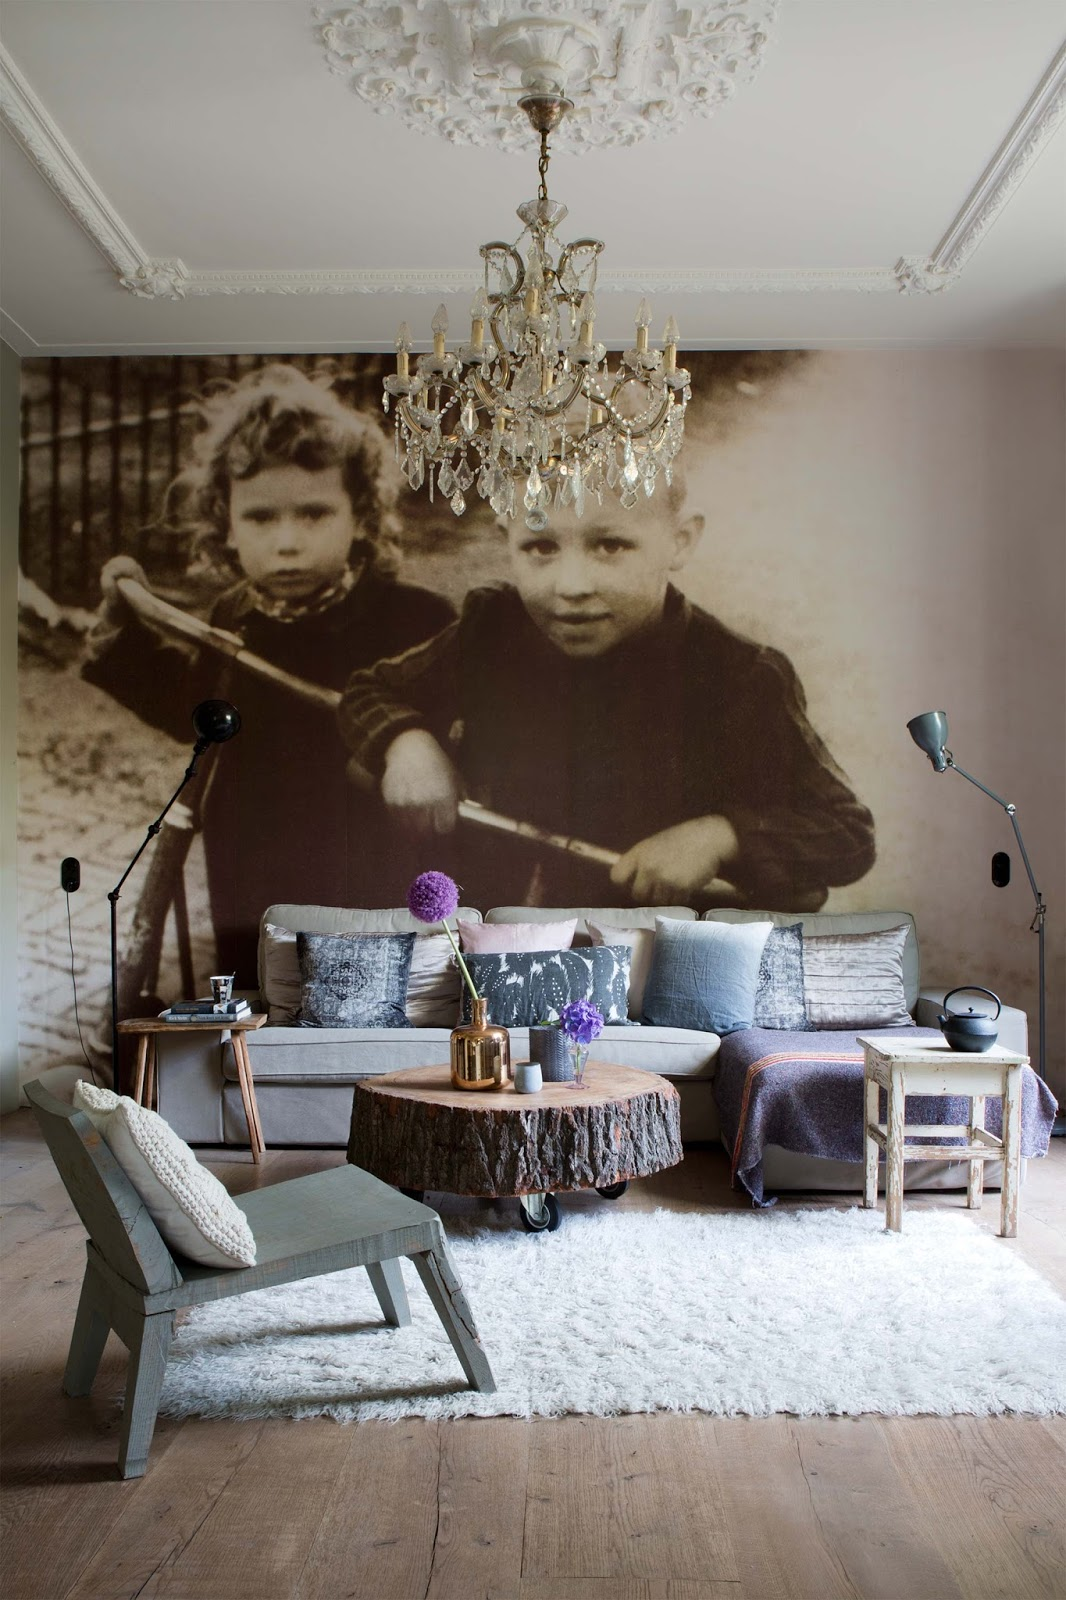 Decordemon an exquisite rustic villa in hilversum the netherlands - Countryside homes parents welcoming ...